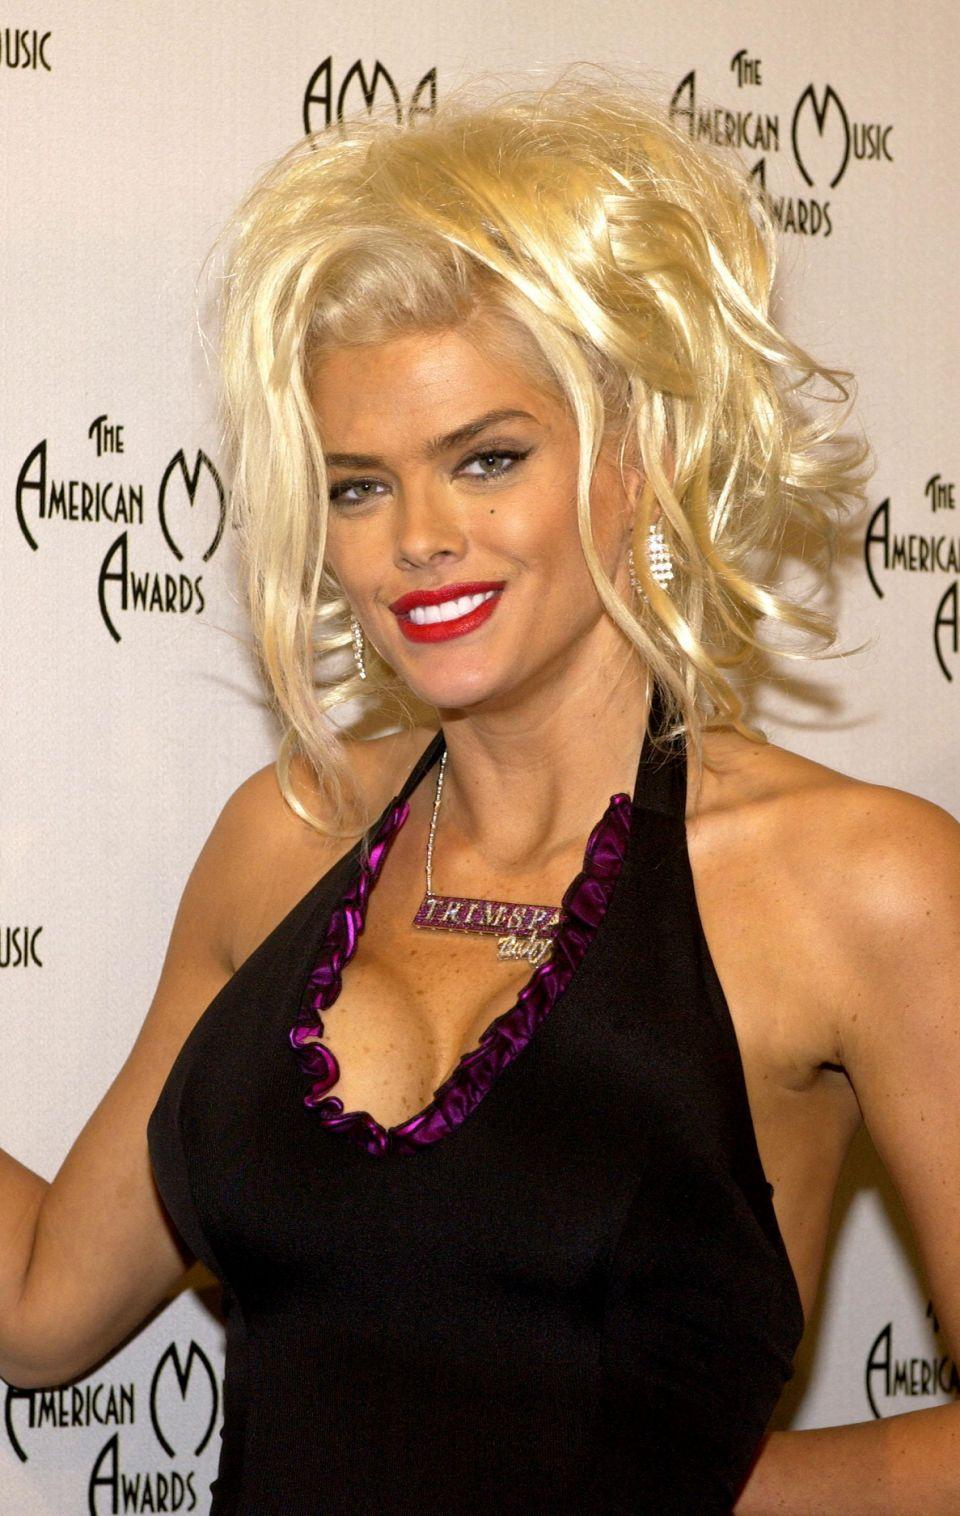 Forget Ange, Trump reveals his dream woman is Anna Nicole Smith. Photo: Getty